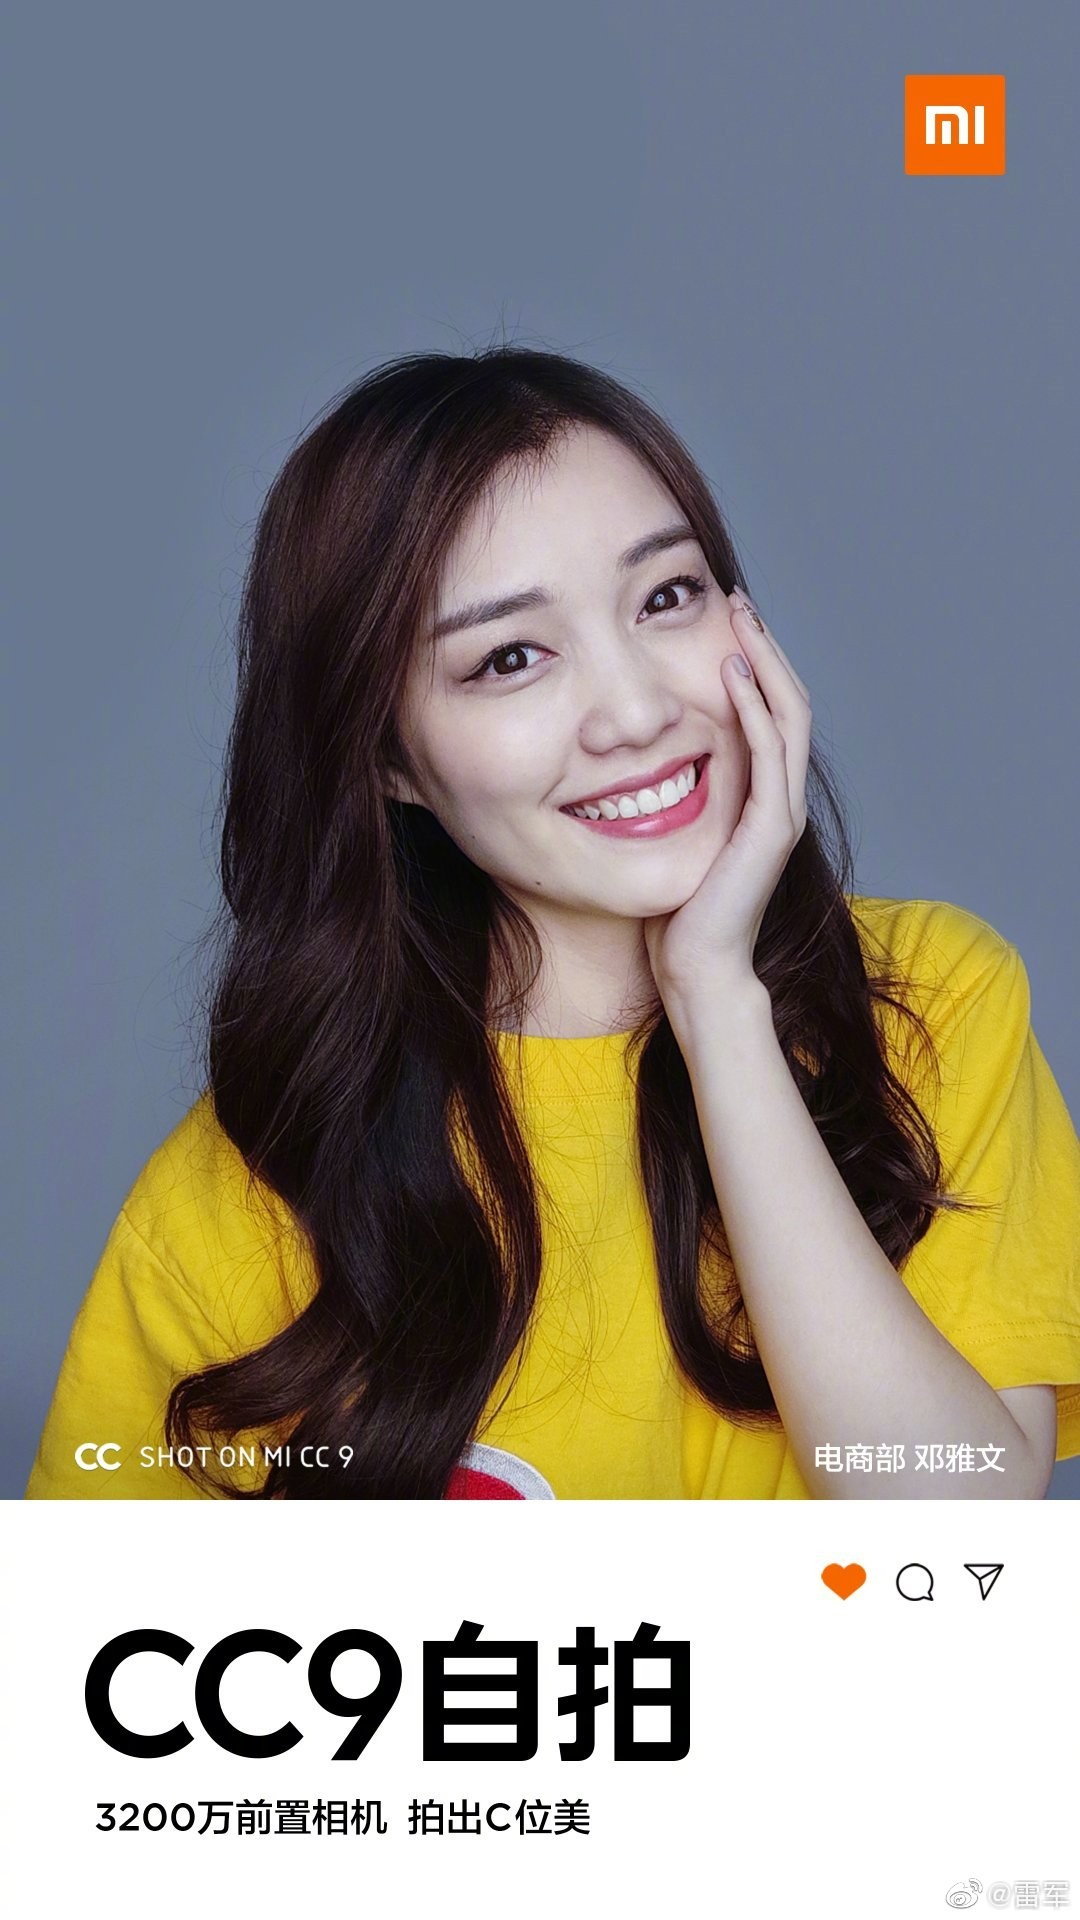 Xiaomi CC9 32 Megapixel Front Camera Sample Announced 1